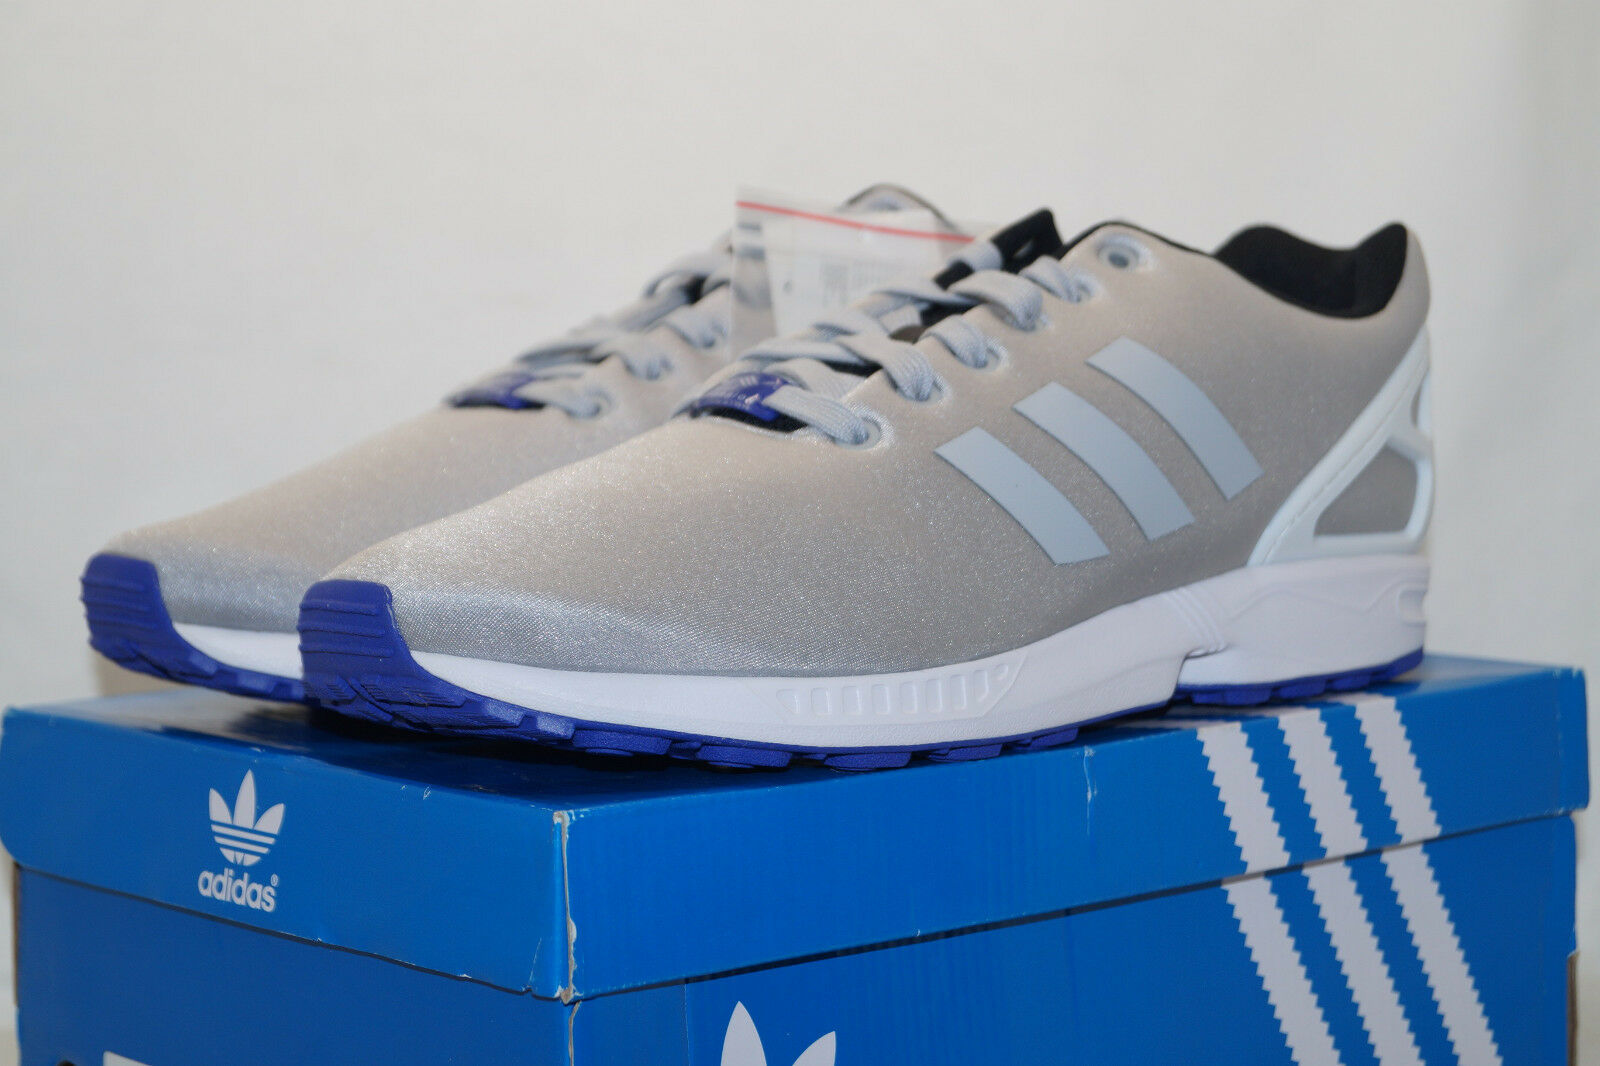 Adidas Originals ZX Flux torsion UE 46.6 uk11.5 gris plata b34505 cortos